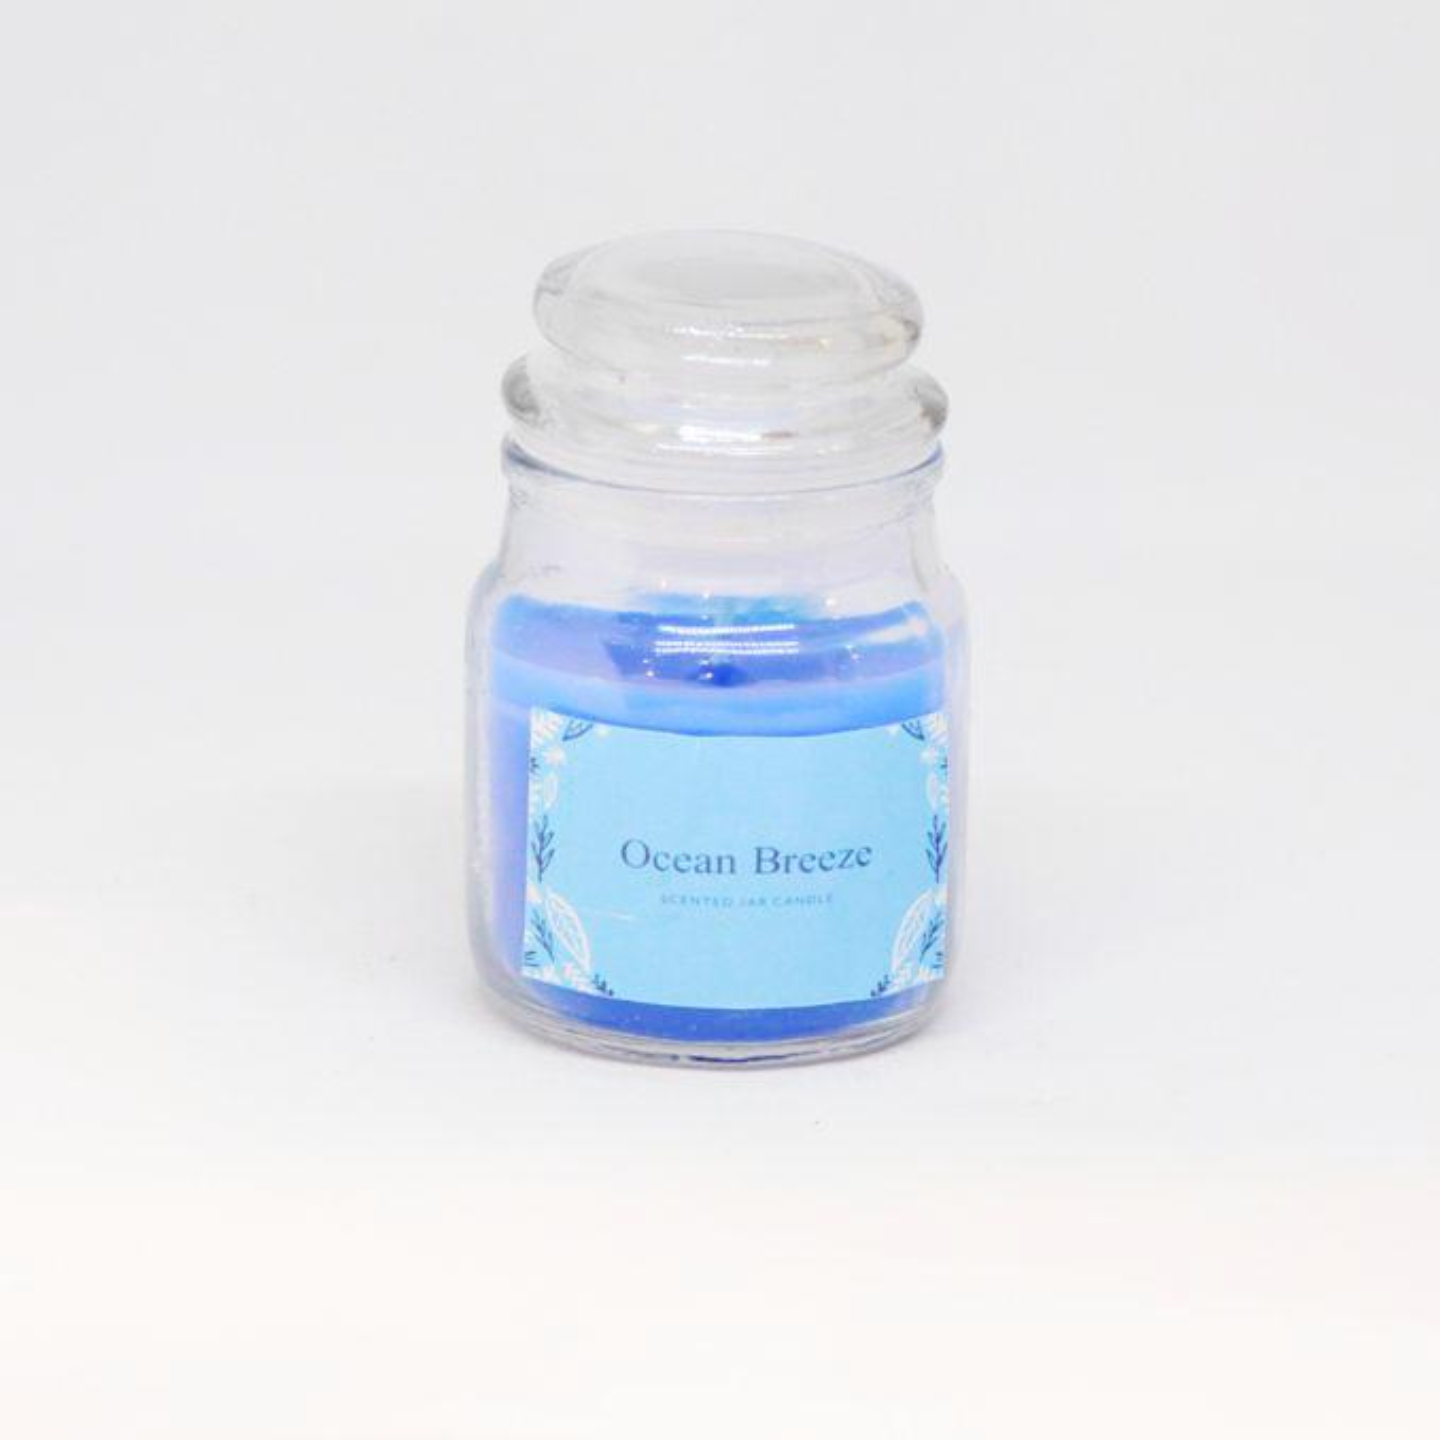 Scented Jar Candle - Ocean Breeze